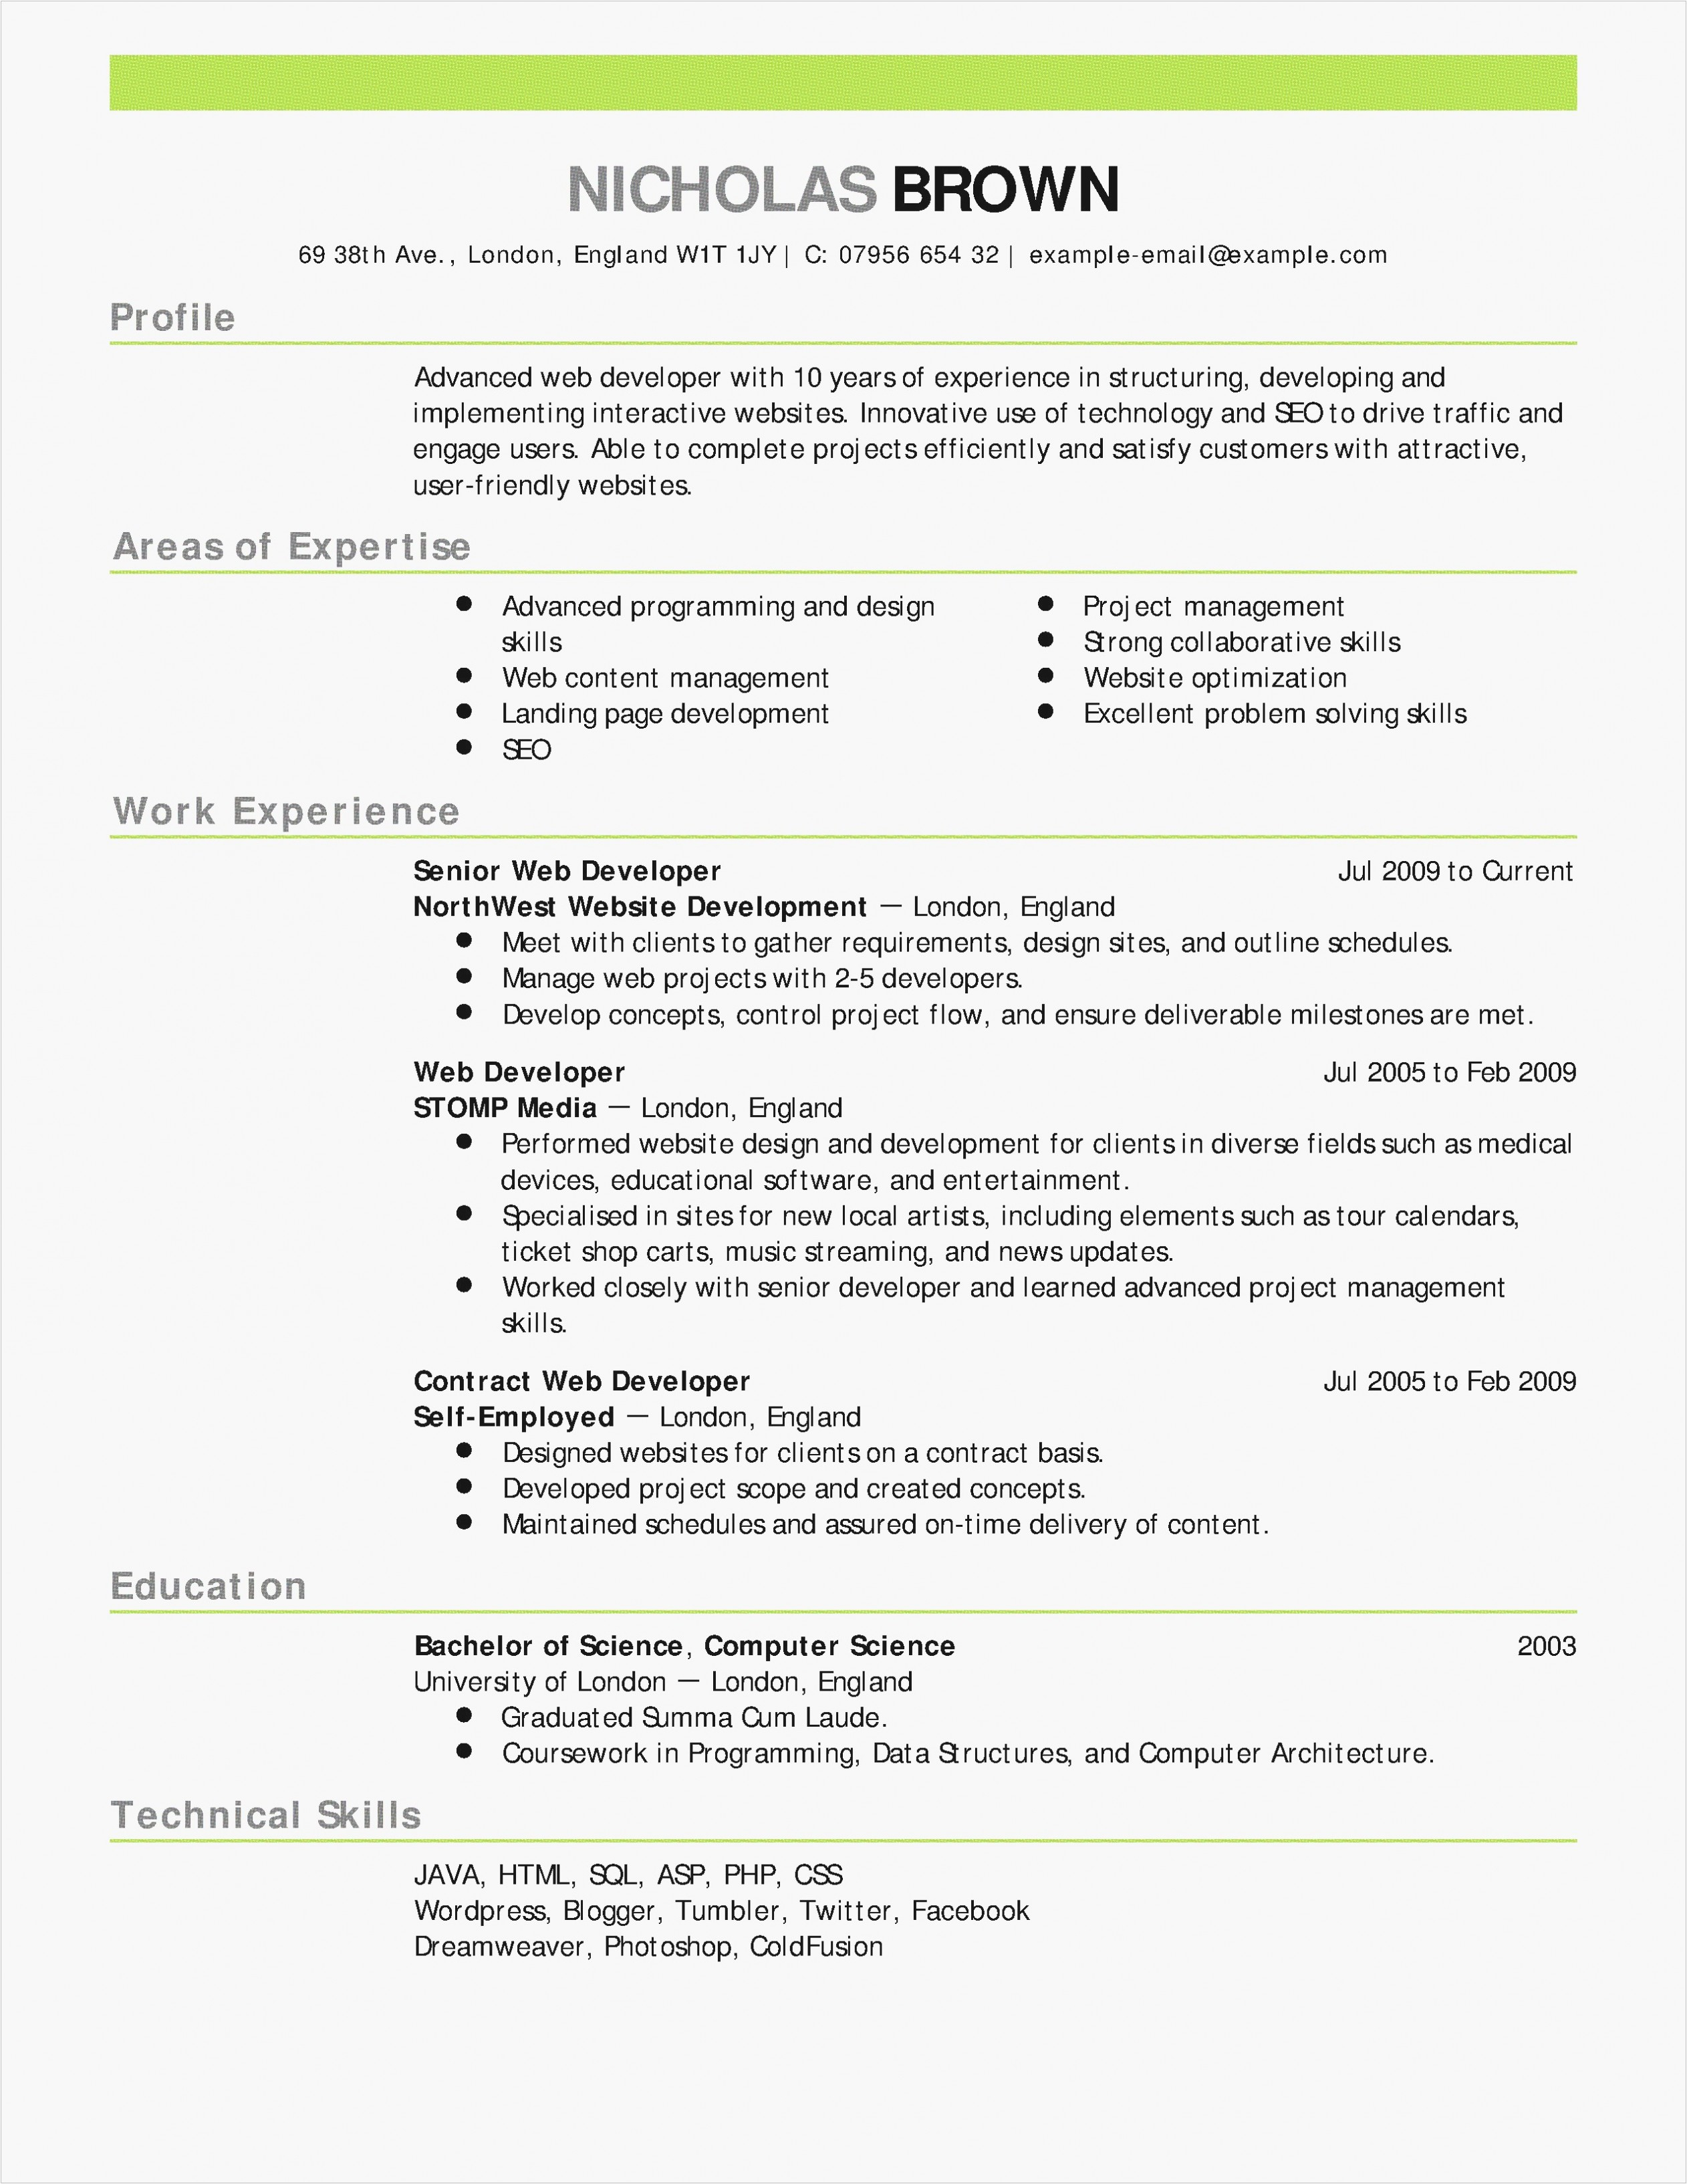 Resume Wordpress theme - Letter Agreement Template Free Collection